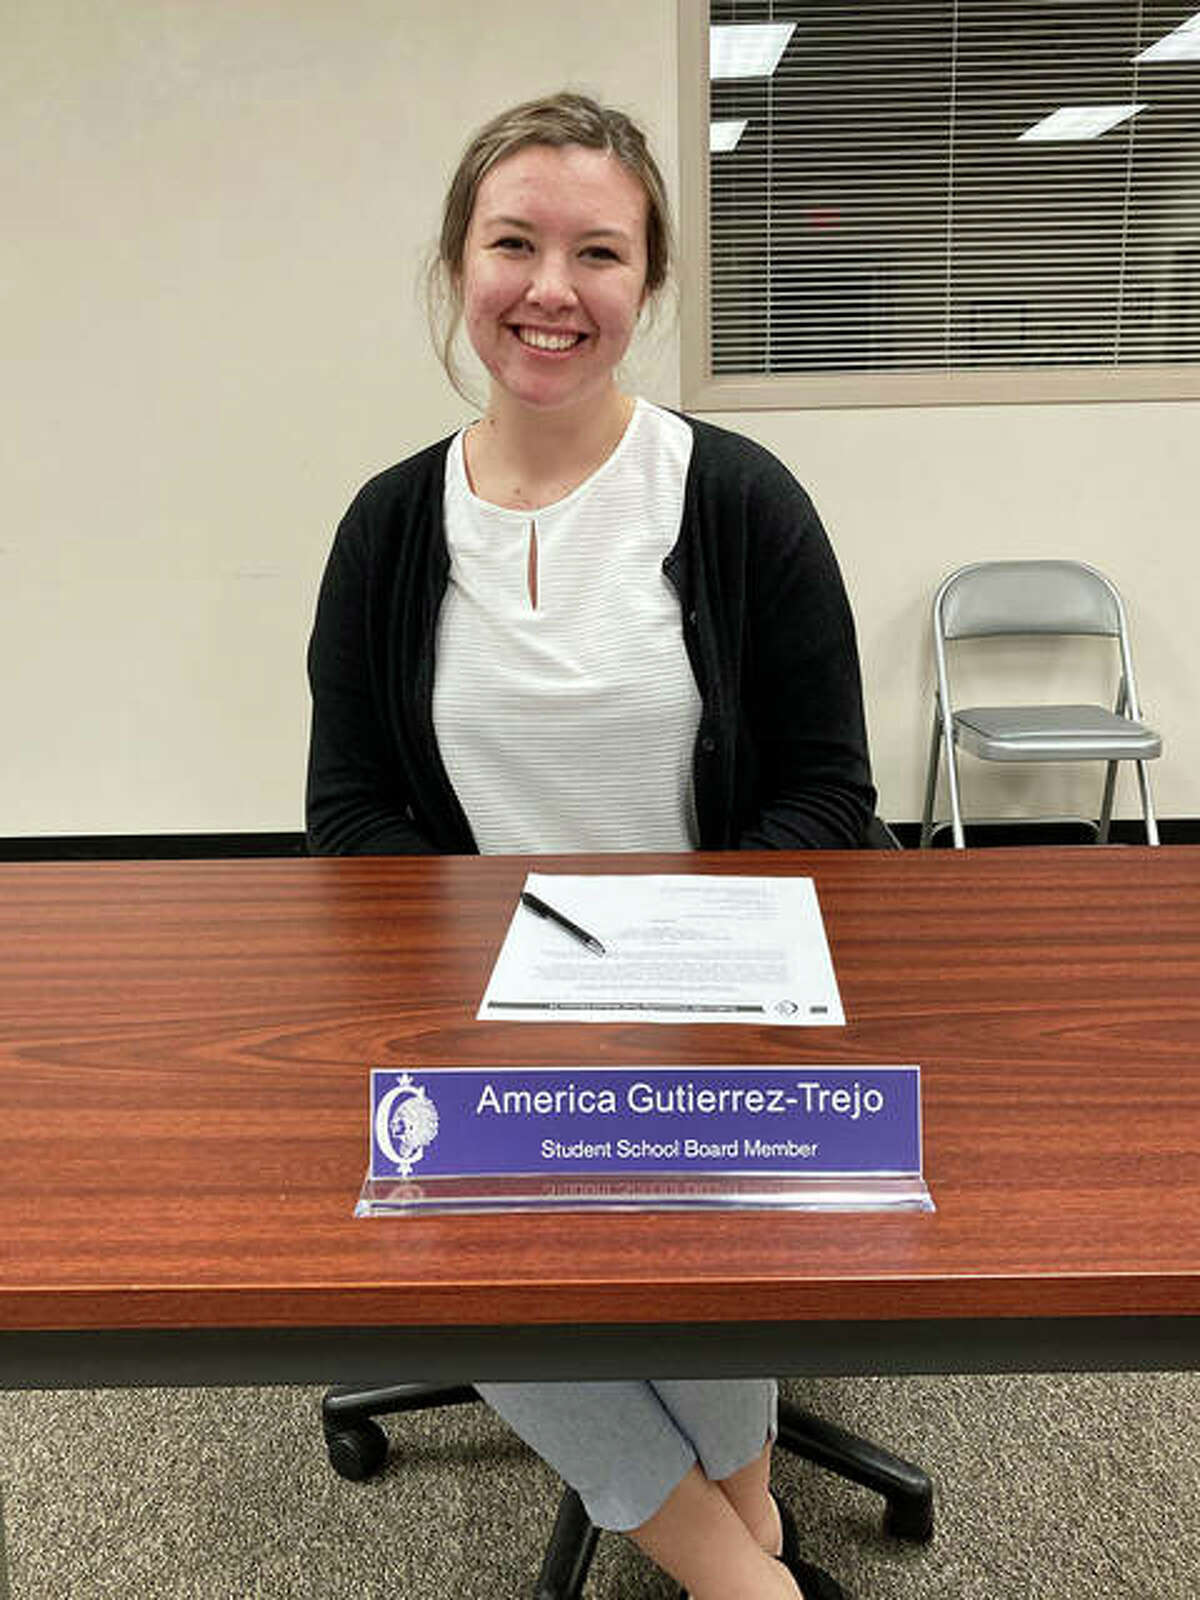 America Gutierrez-Trejo, a senior at Collinsville High School, is the student board member this year. Here she is before the start of a recent school board meeting. America also serves on the 2020-21 Illinois School Board of Education's Student Advisory Council.